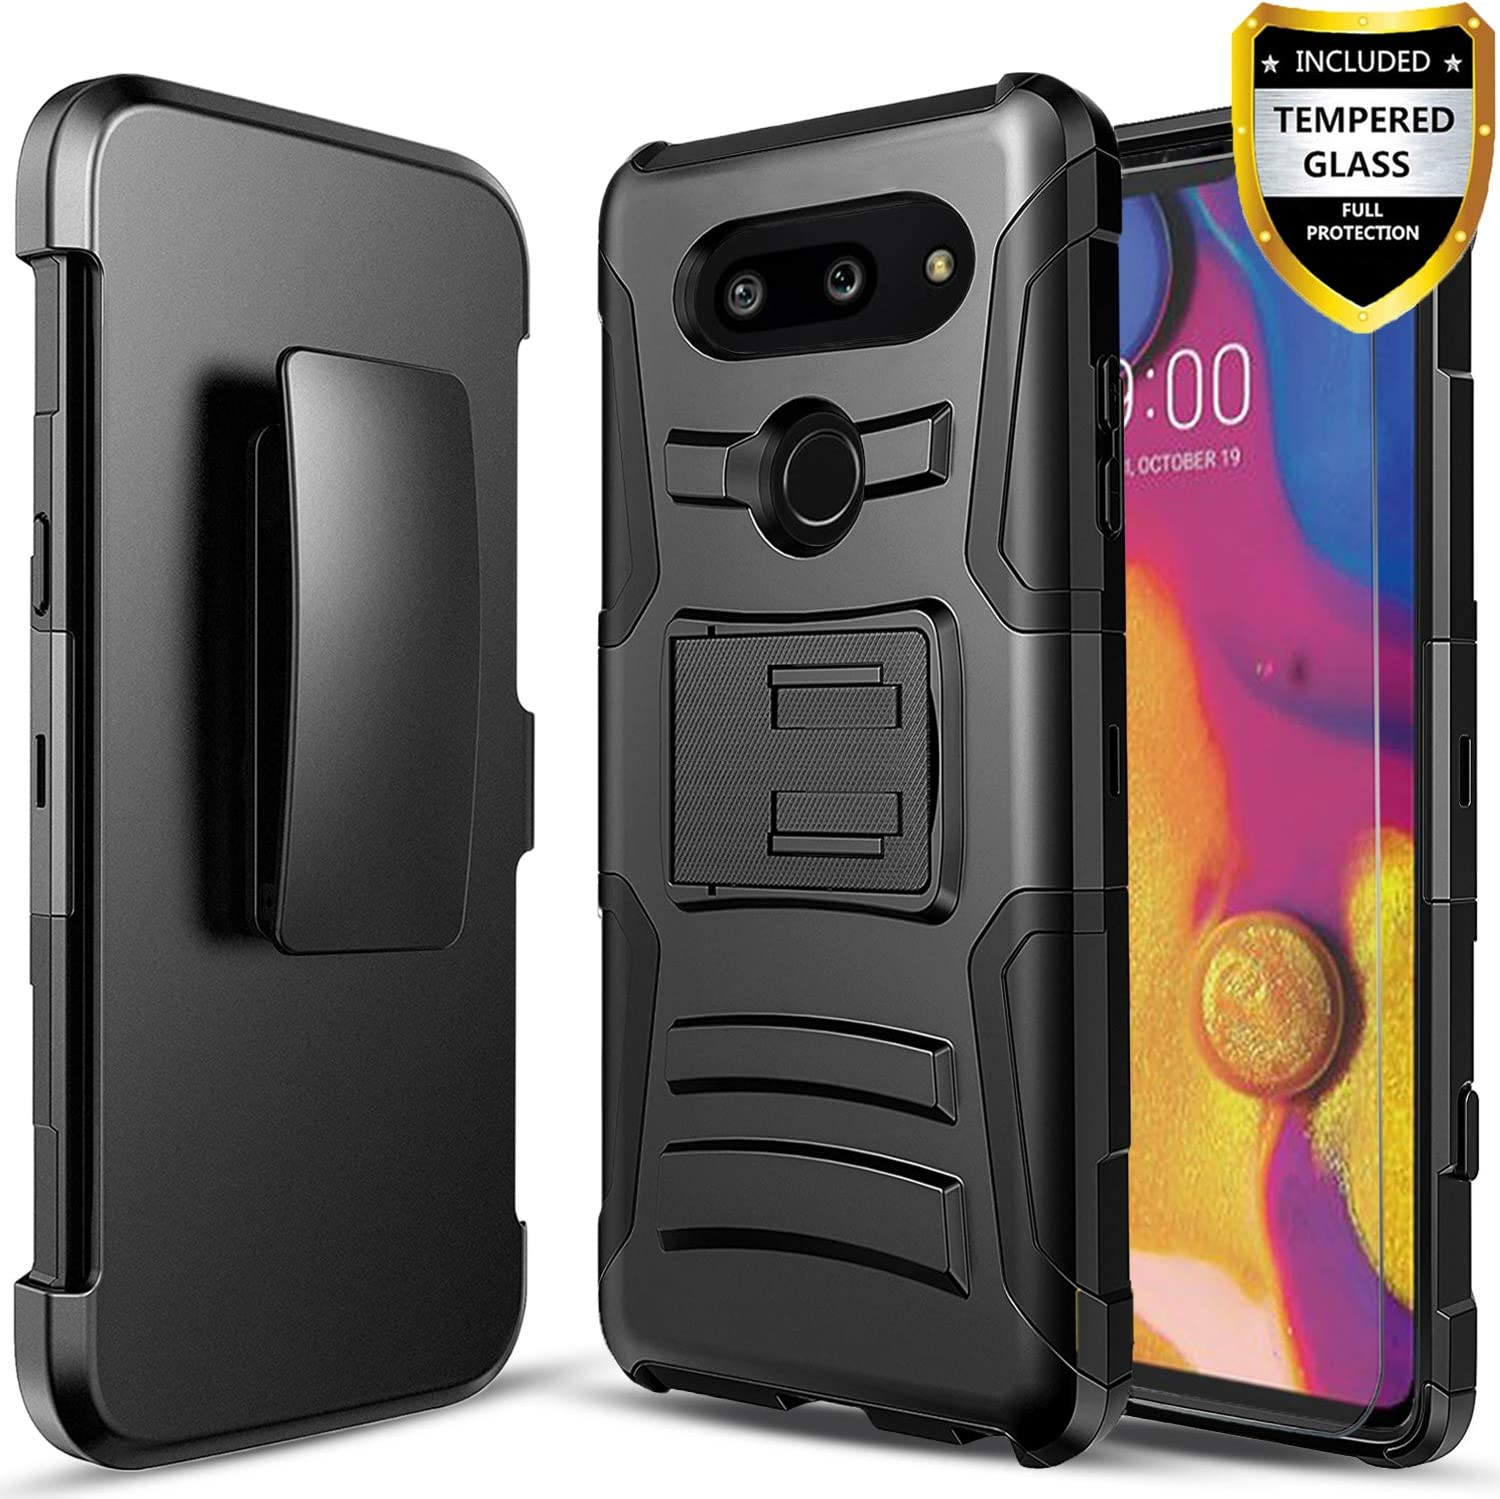 LG G8 ThinQ Case, with [Tempered Glass Screen Protector Included], Circlemalls Built-in Kickstand Belt Clip Holster Heavy Duty Protective Phone Cover Bundled and Stylus Pen-Black